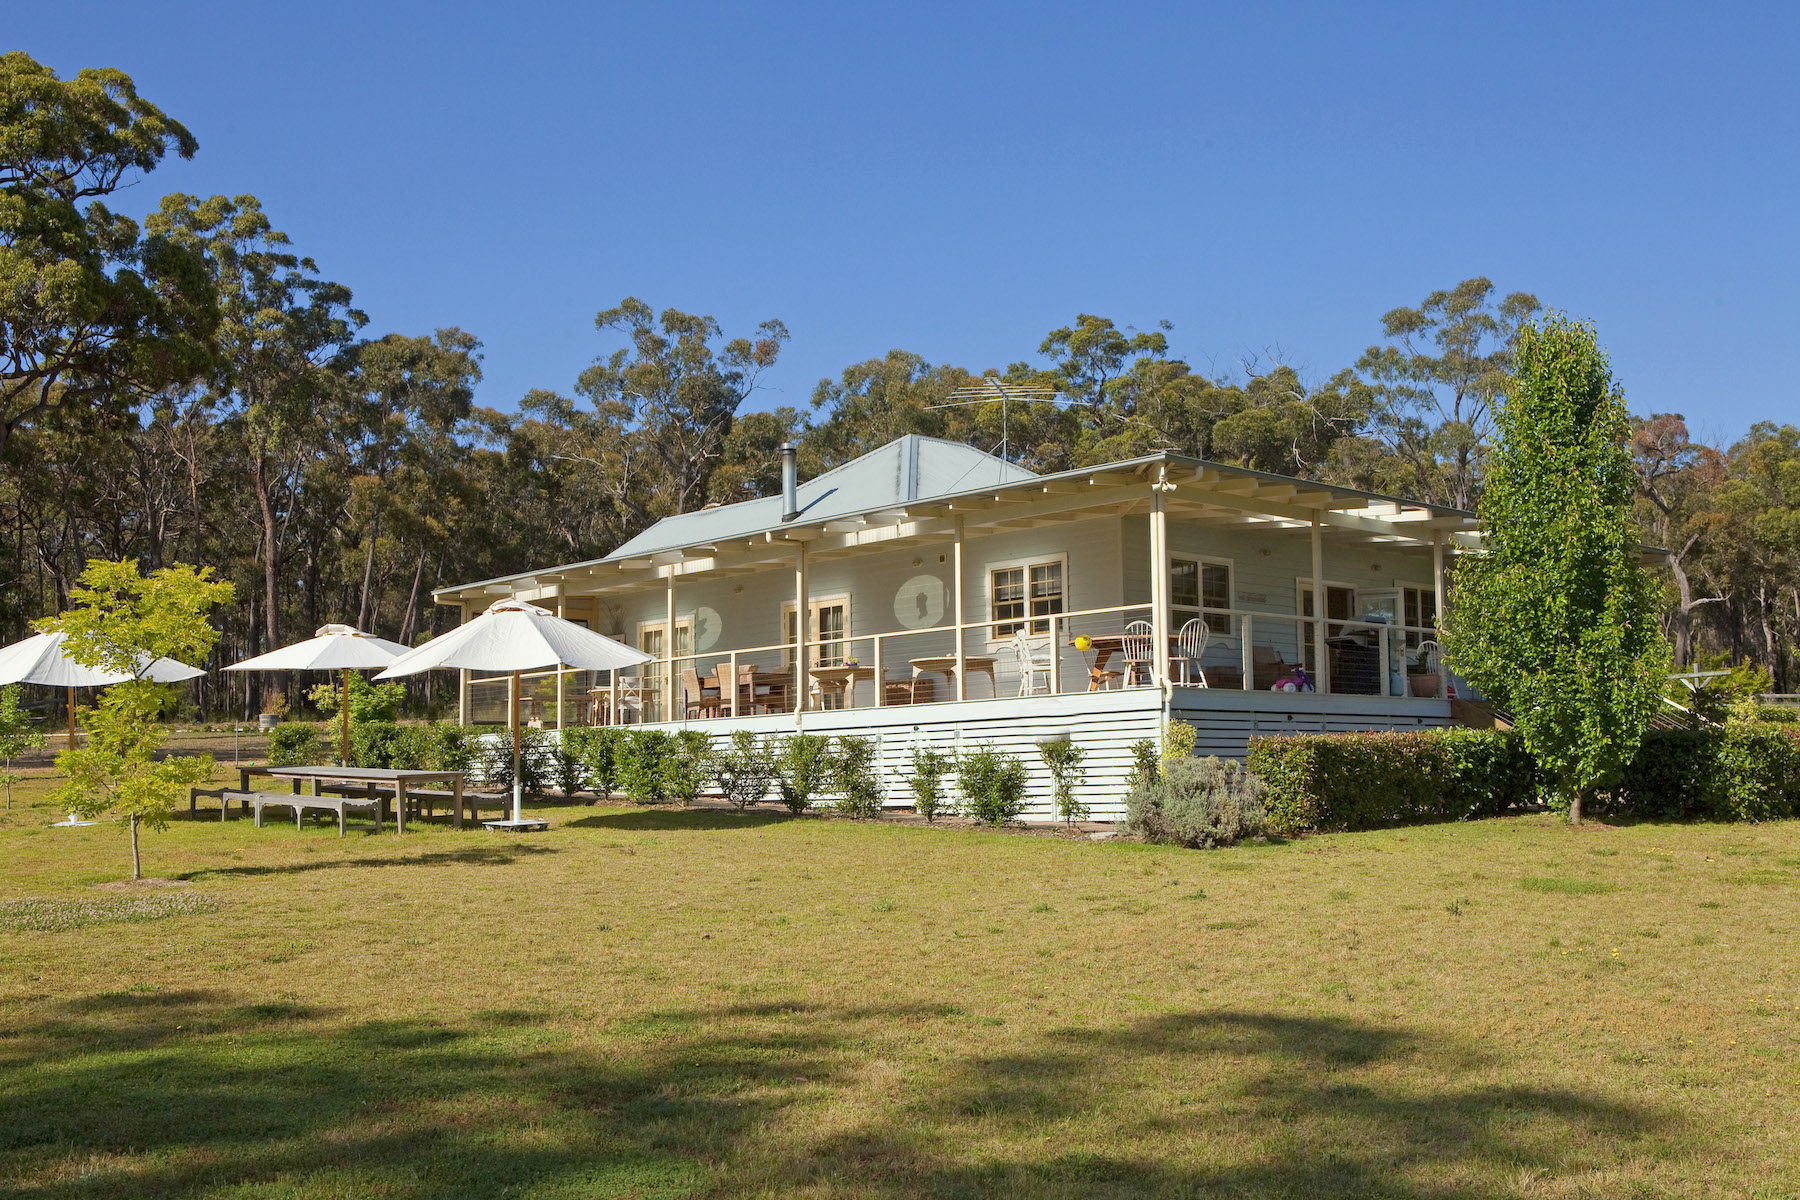 Résidentiel à vendre en 800 Old Hume Highway, Sydney, New South Wales ,2575  , Australie